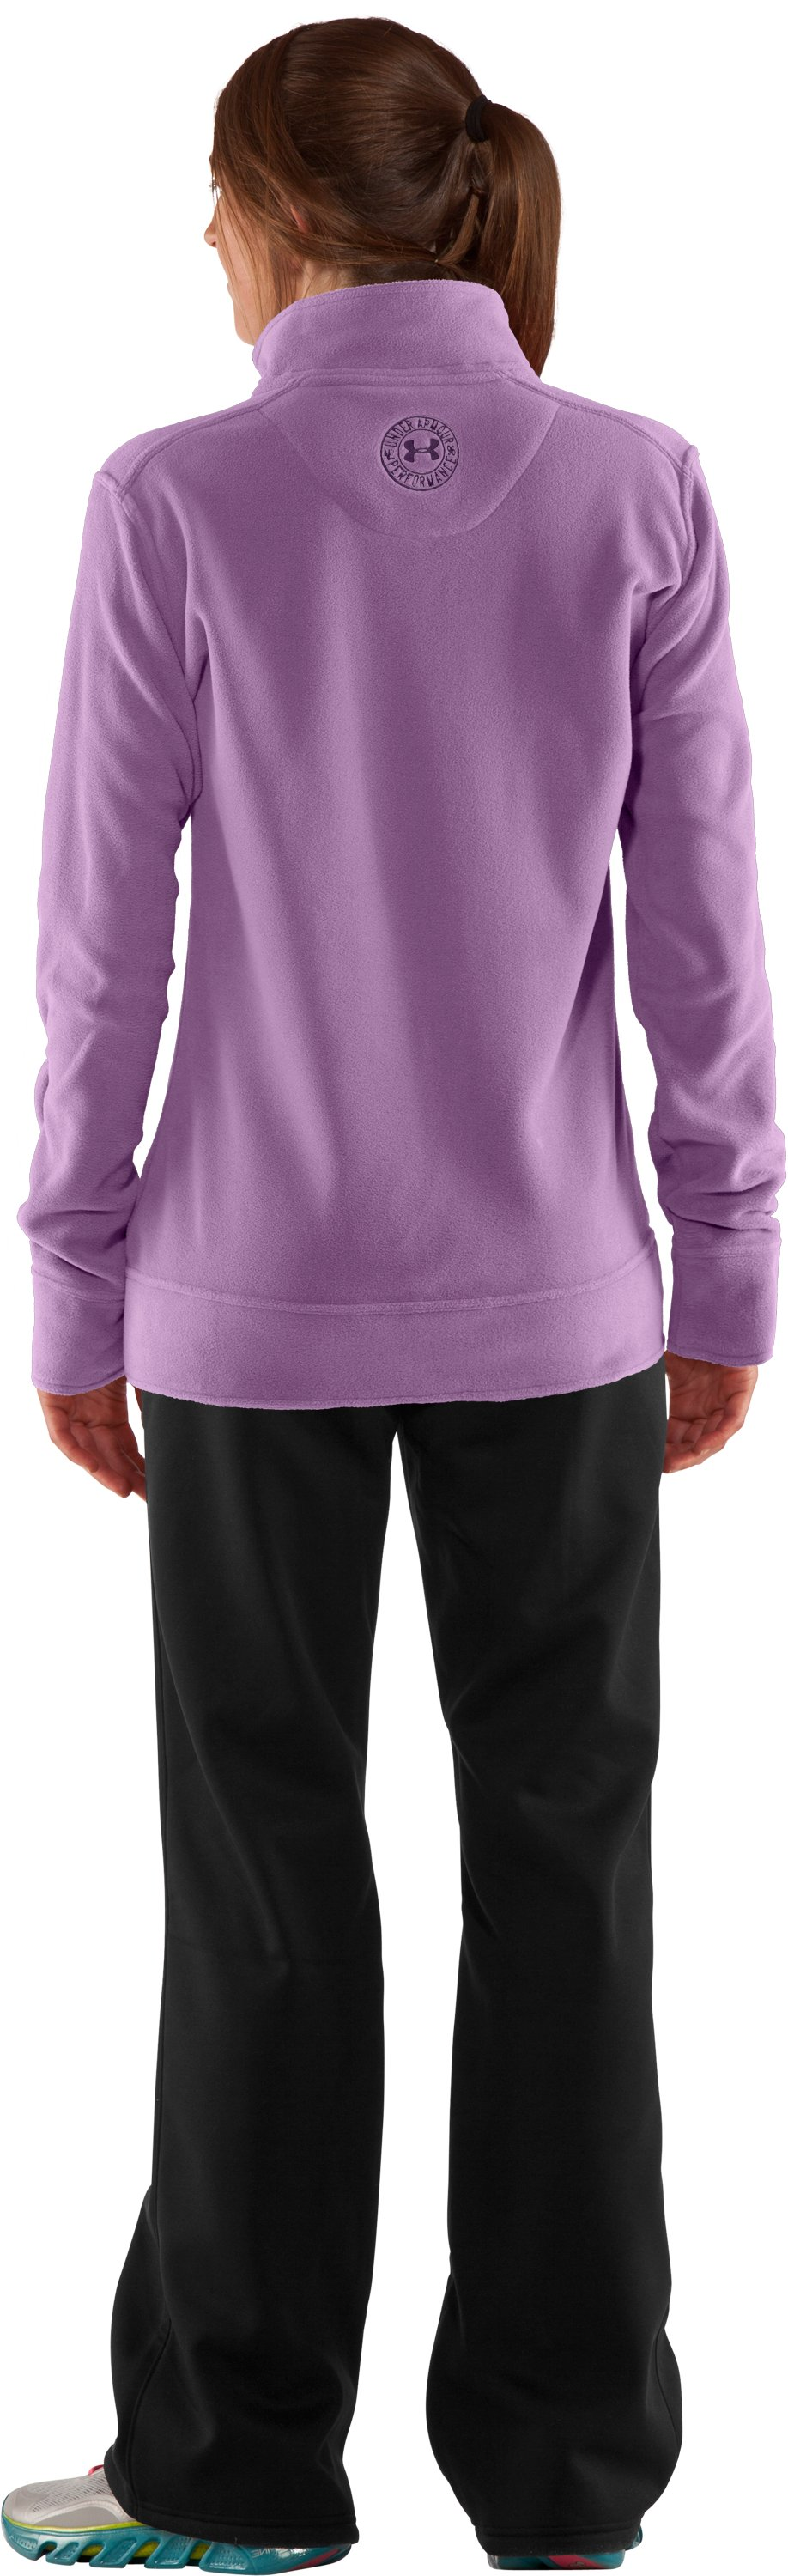 Women's Double Hundo® Full Zip Fleece, Sugar Plum, Back